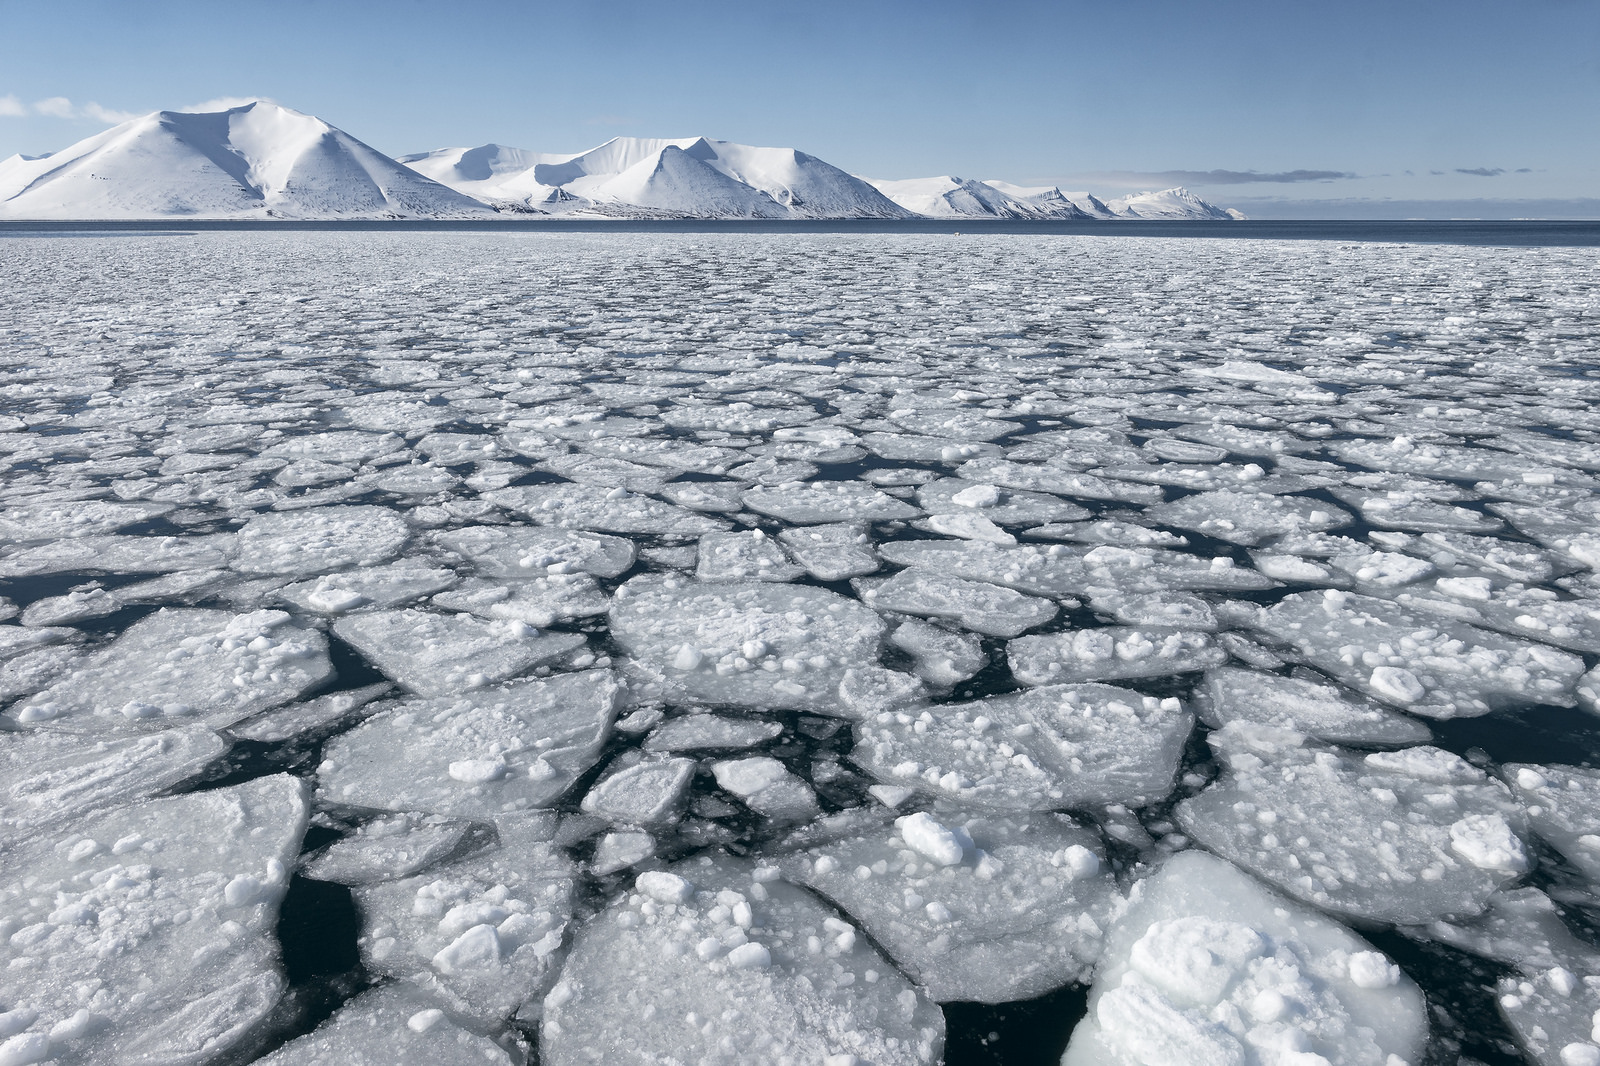 Image: An icy body of water with snow covered mountains in the back